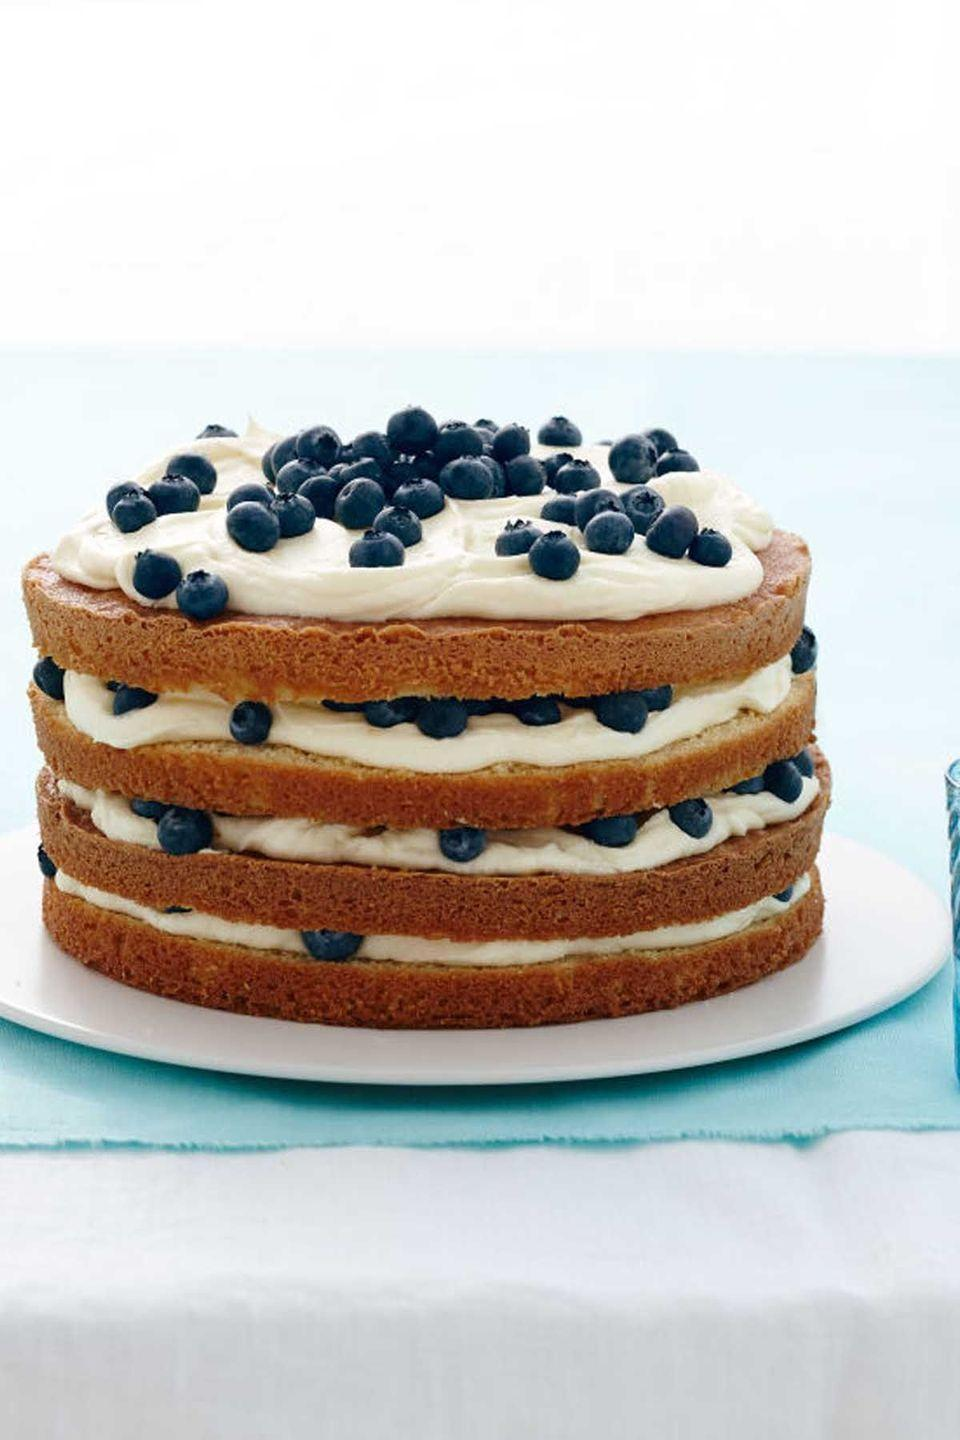 """<p>This naked cake might look simple, but the lemon frosting and fresh blueberries will be far from boring for your taste buds.</p><p><strong><em><a href=""""https://www.womansday.com/food-recipes/food-drinks/recipes/a13417/lemon-blueberry-layer-cake-recipe-wdy0414/"""" rel=""""nofollow noopener"""" target=""""_blank"""" data-ylk=""""slk:Get the Lemon Blueberry Layer Cake recipe."""" class=""""link rapid-noclick-resp"""">Get the Lemon Blueberry Layer Cake recipe. </a></em></strong><br></p>"""